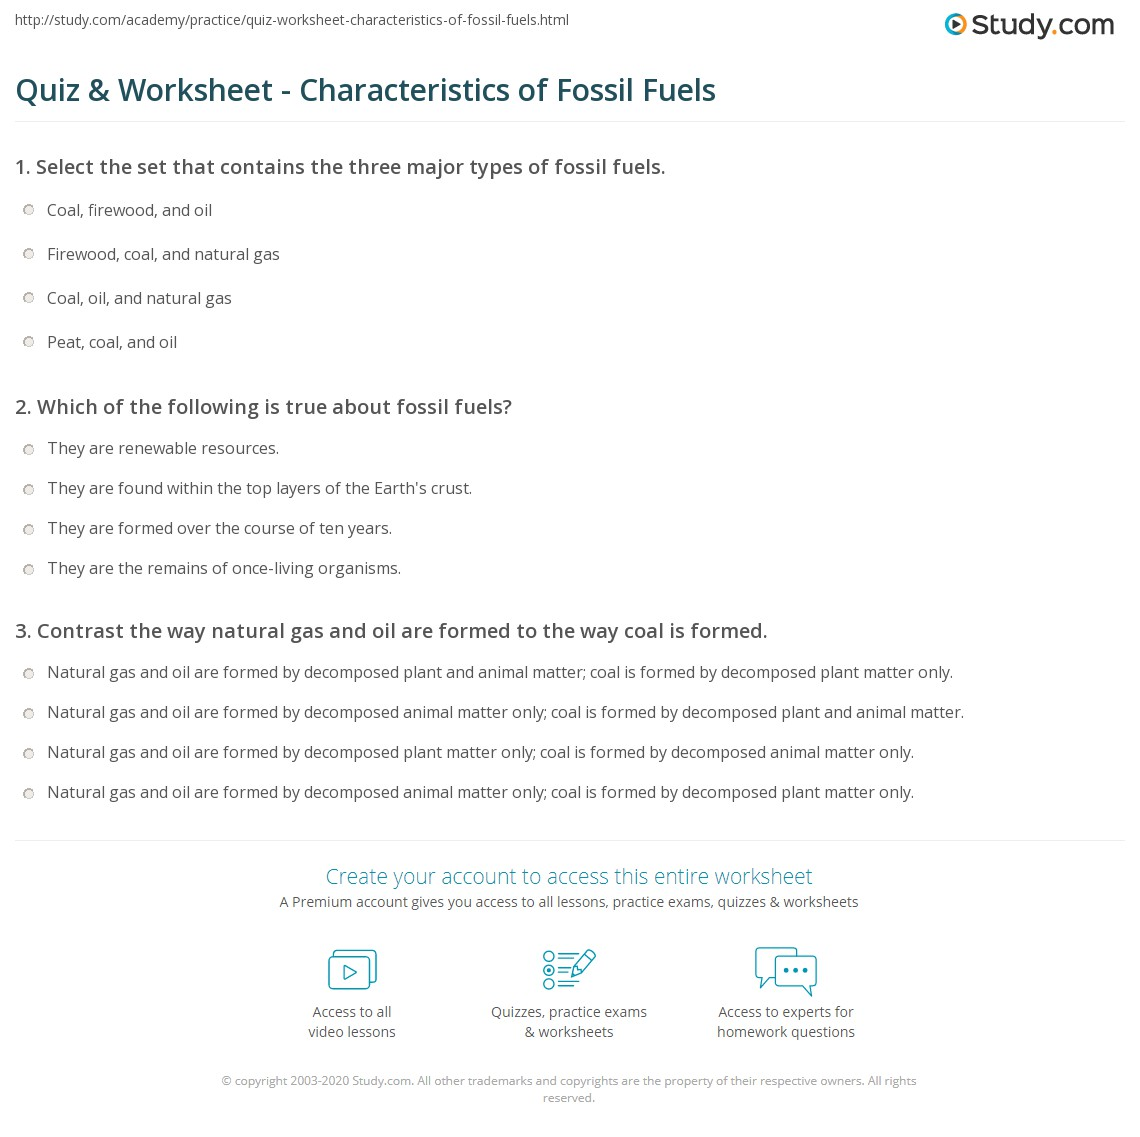 quiz & worksheet - characteristics of fossil fuels | study